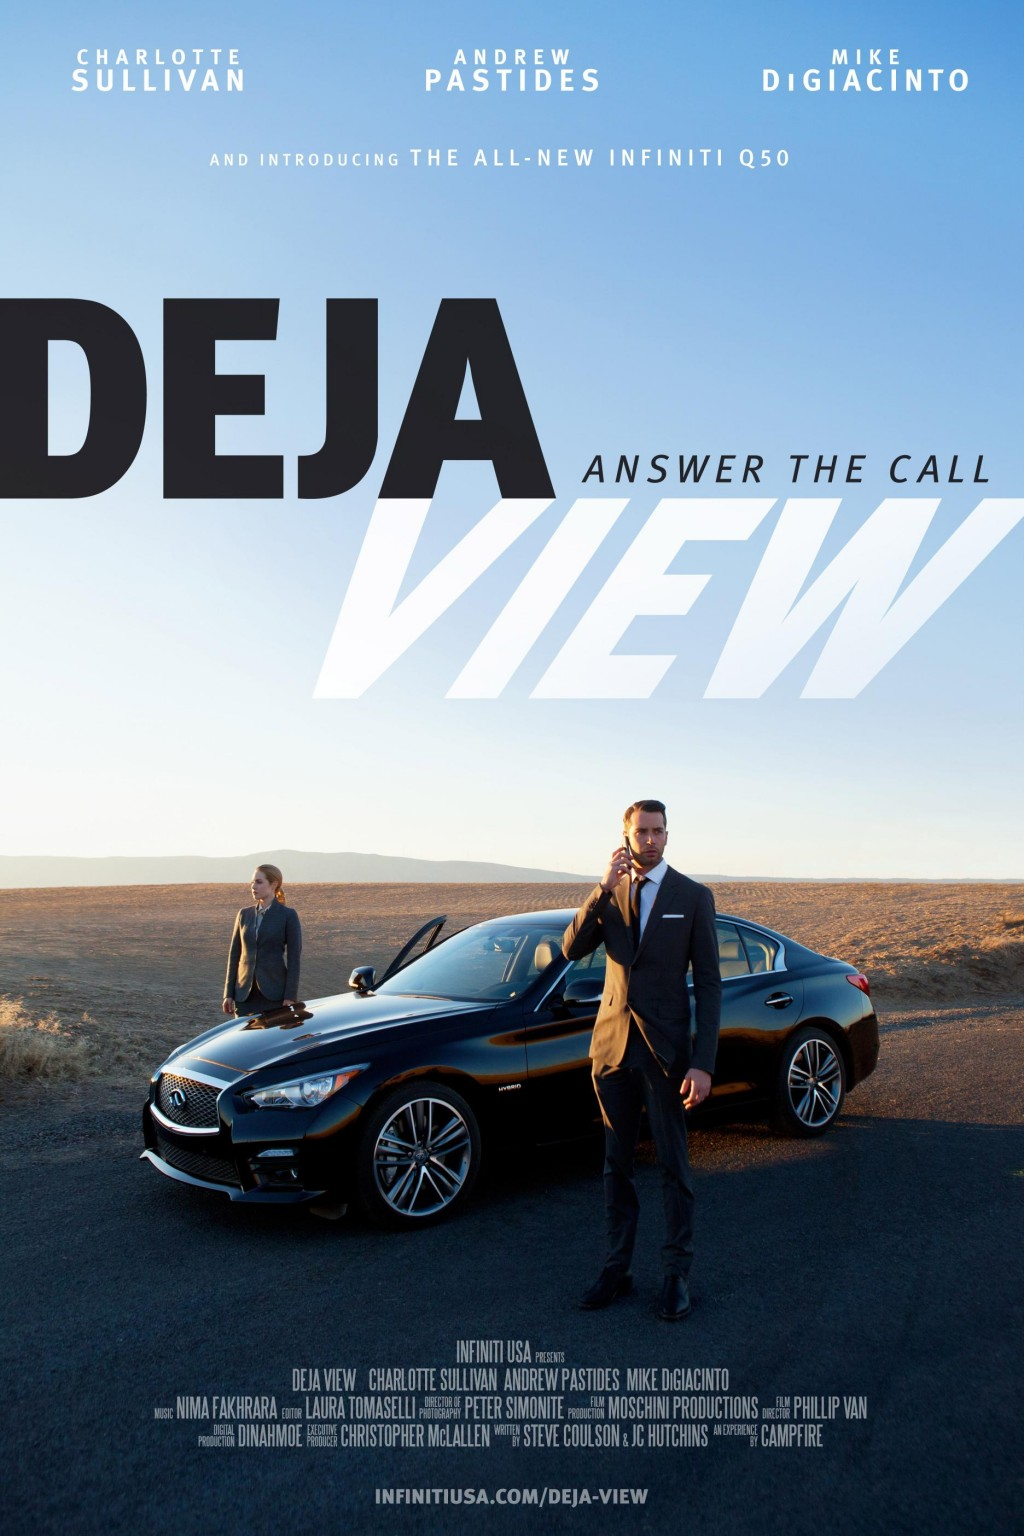 Infiniti and Campfire's Deja-View interactive movie